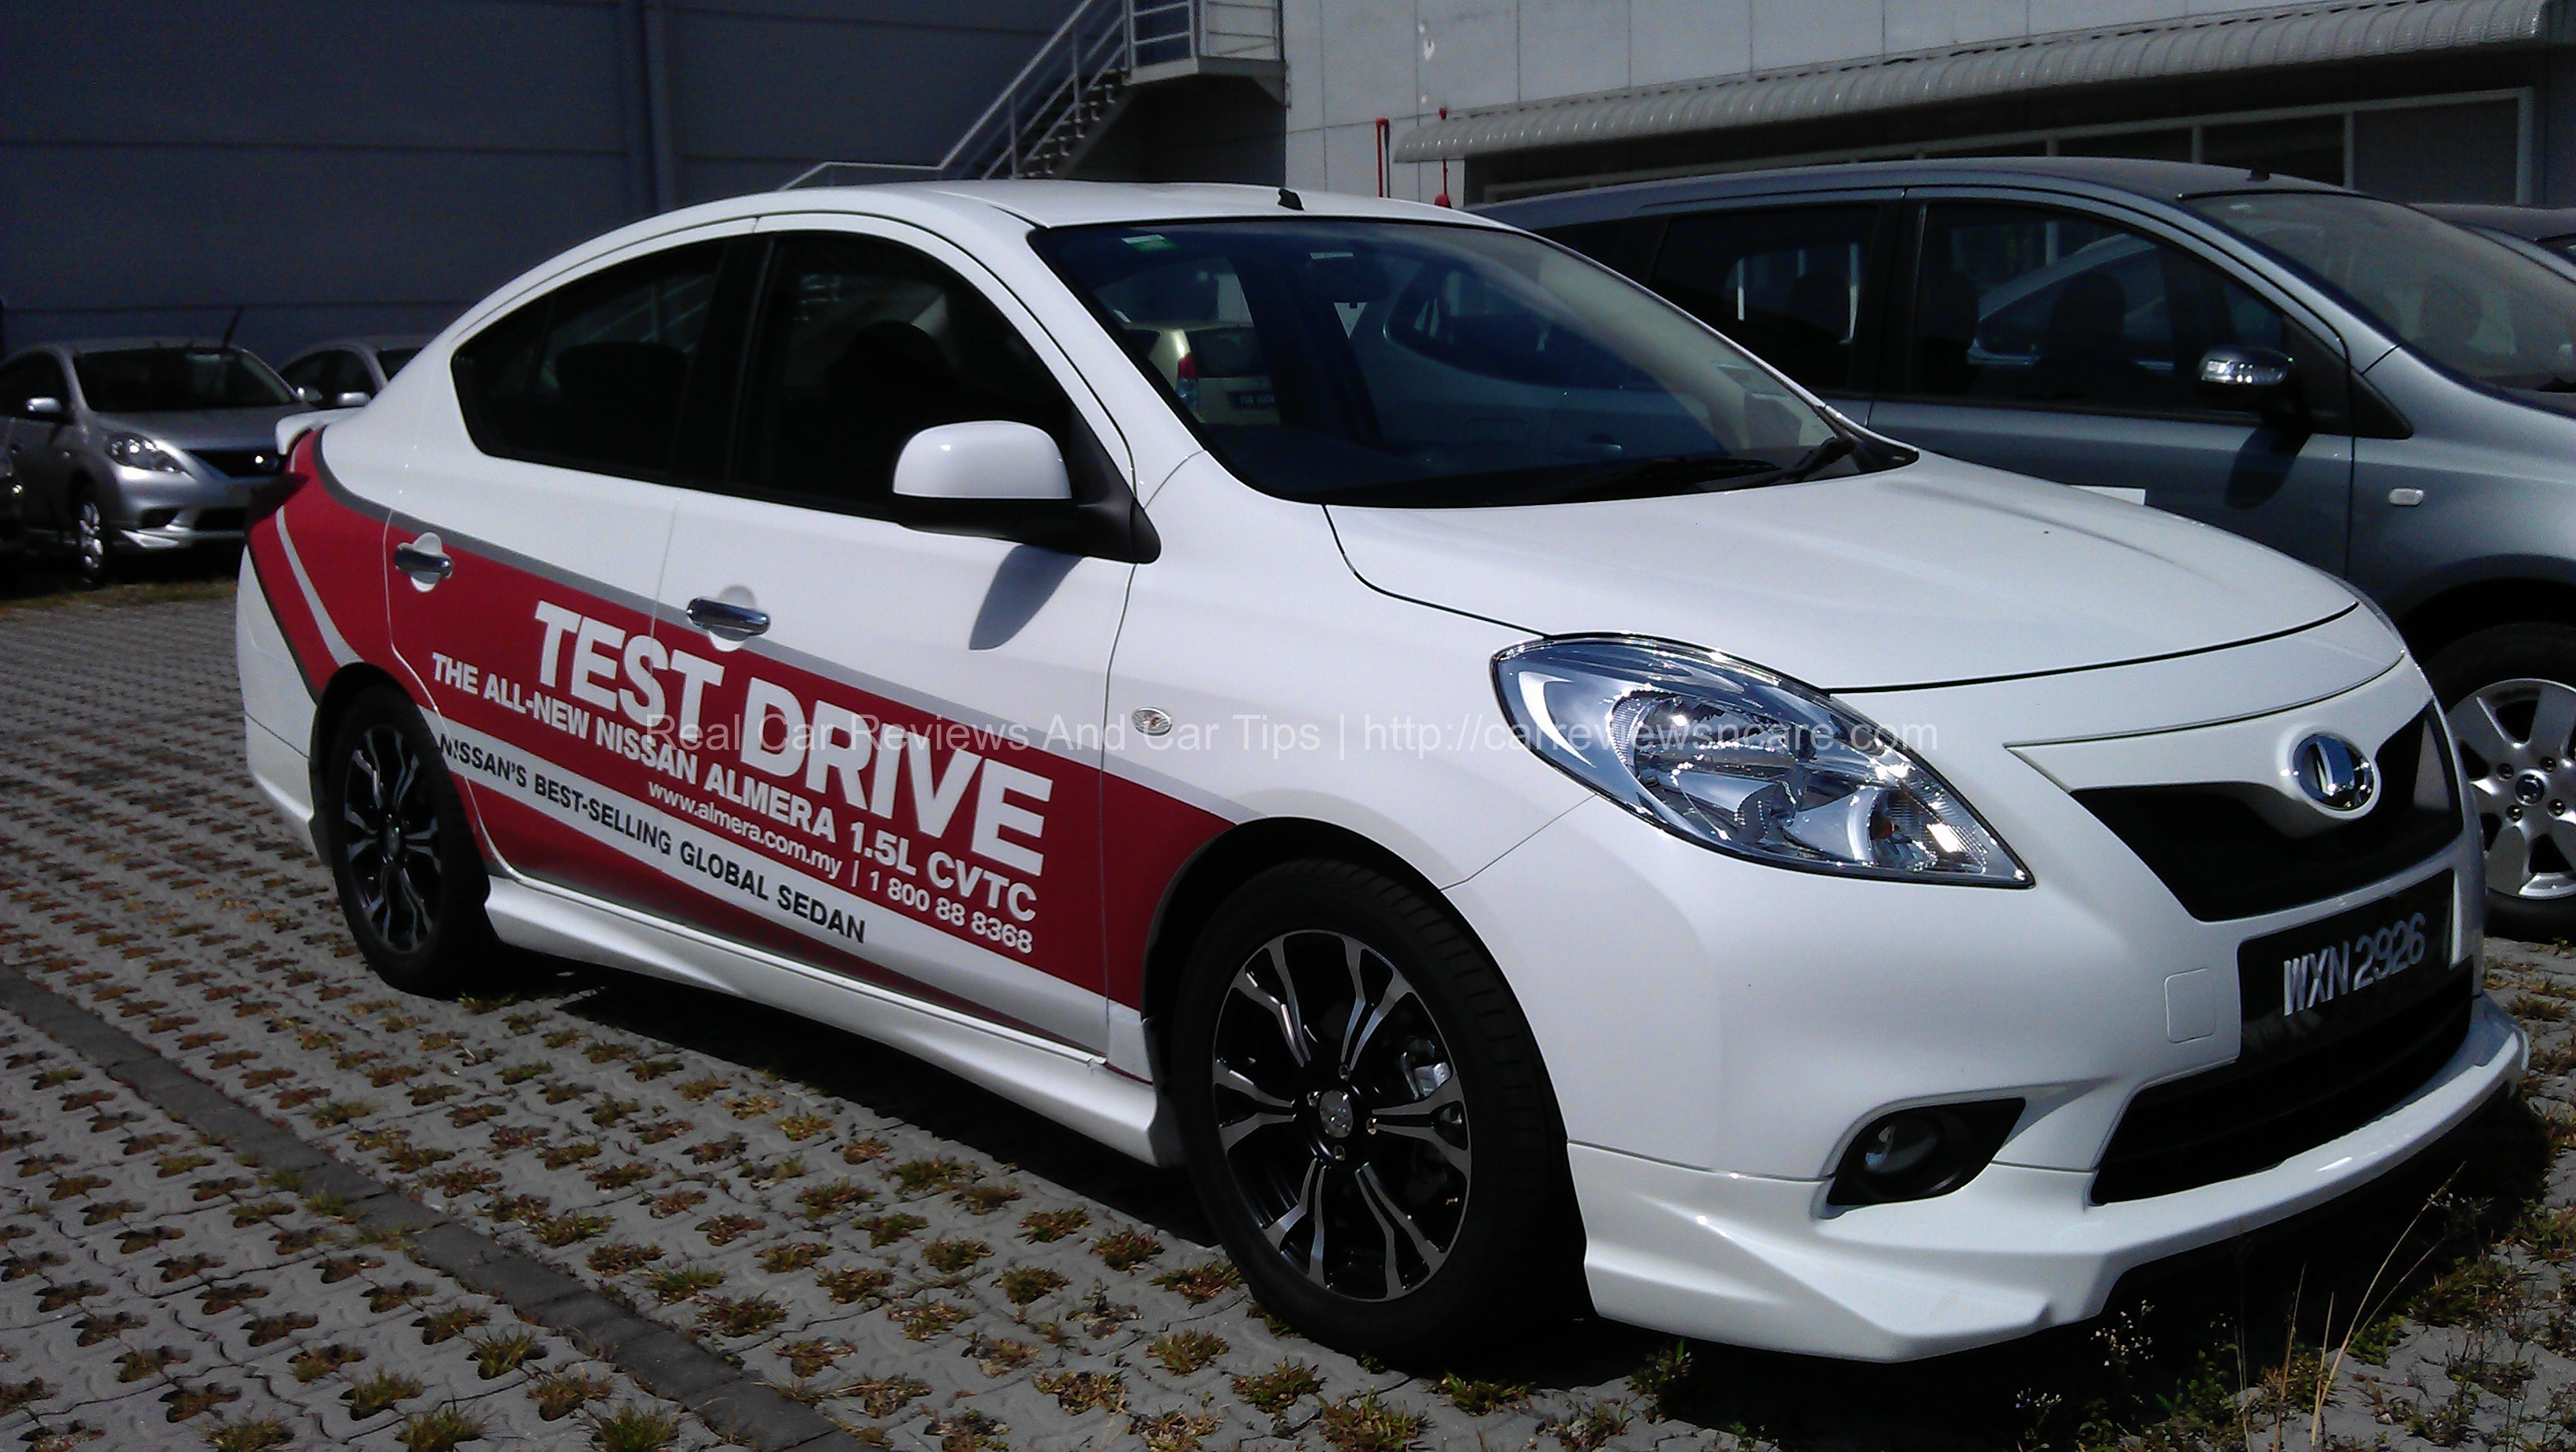 nissan almera 1 5v test drive review in penang